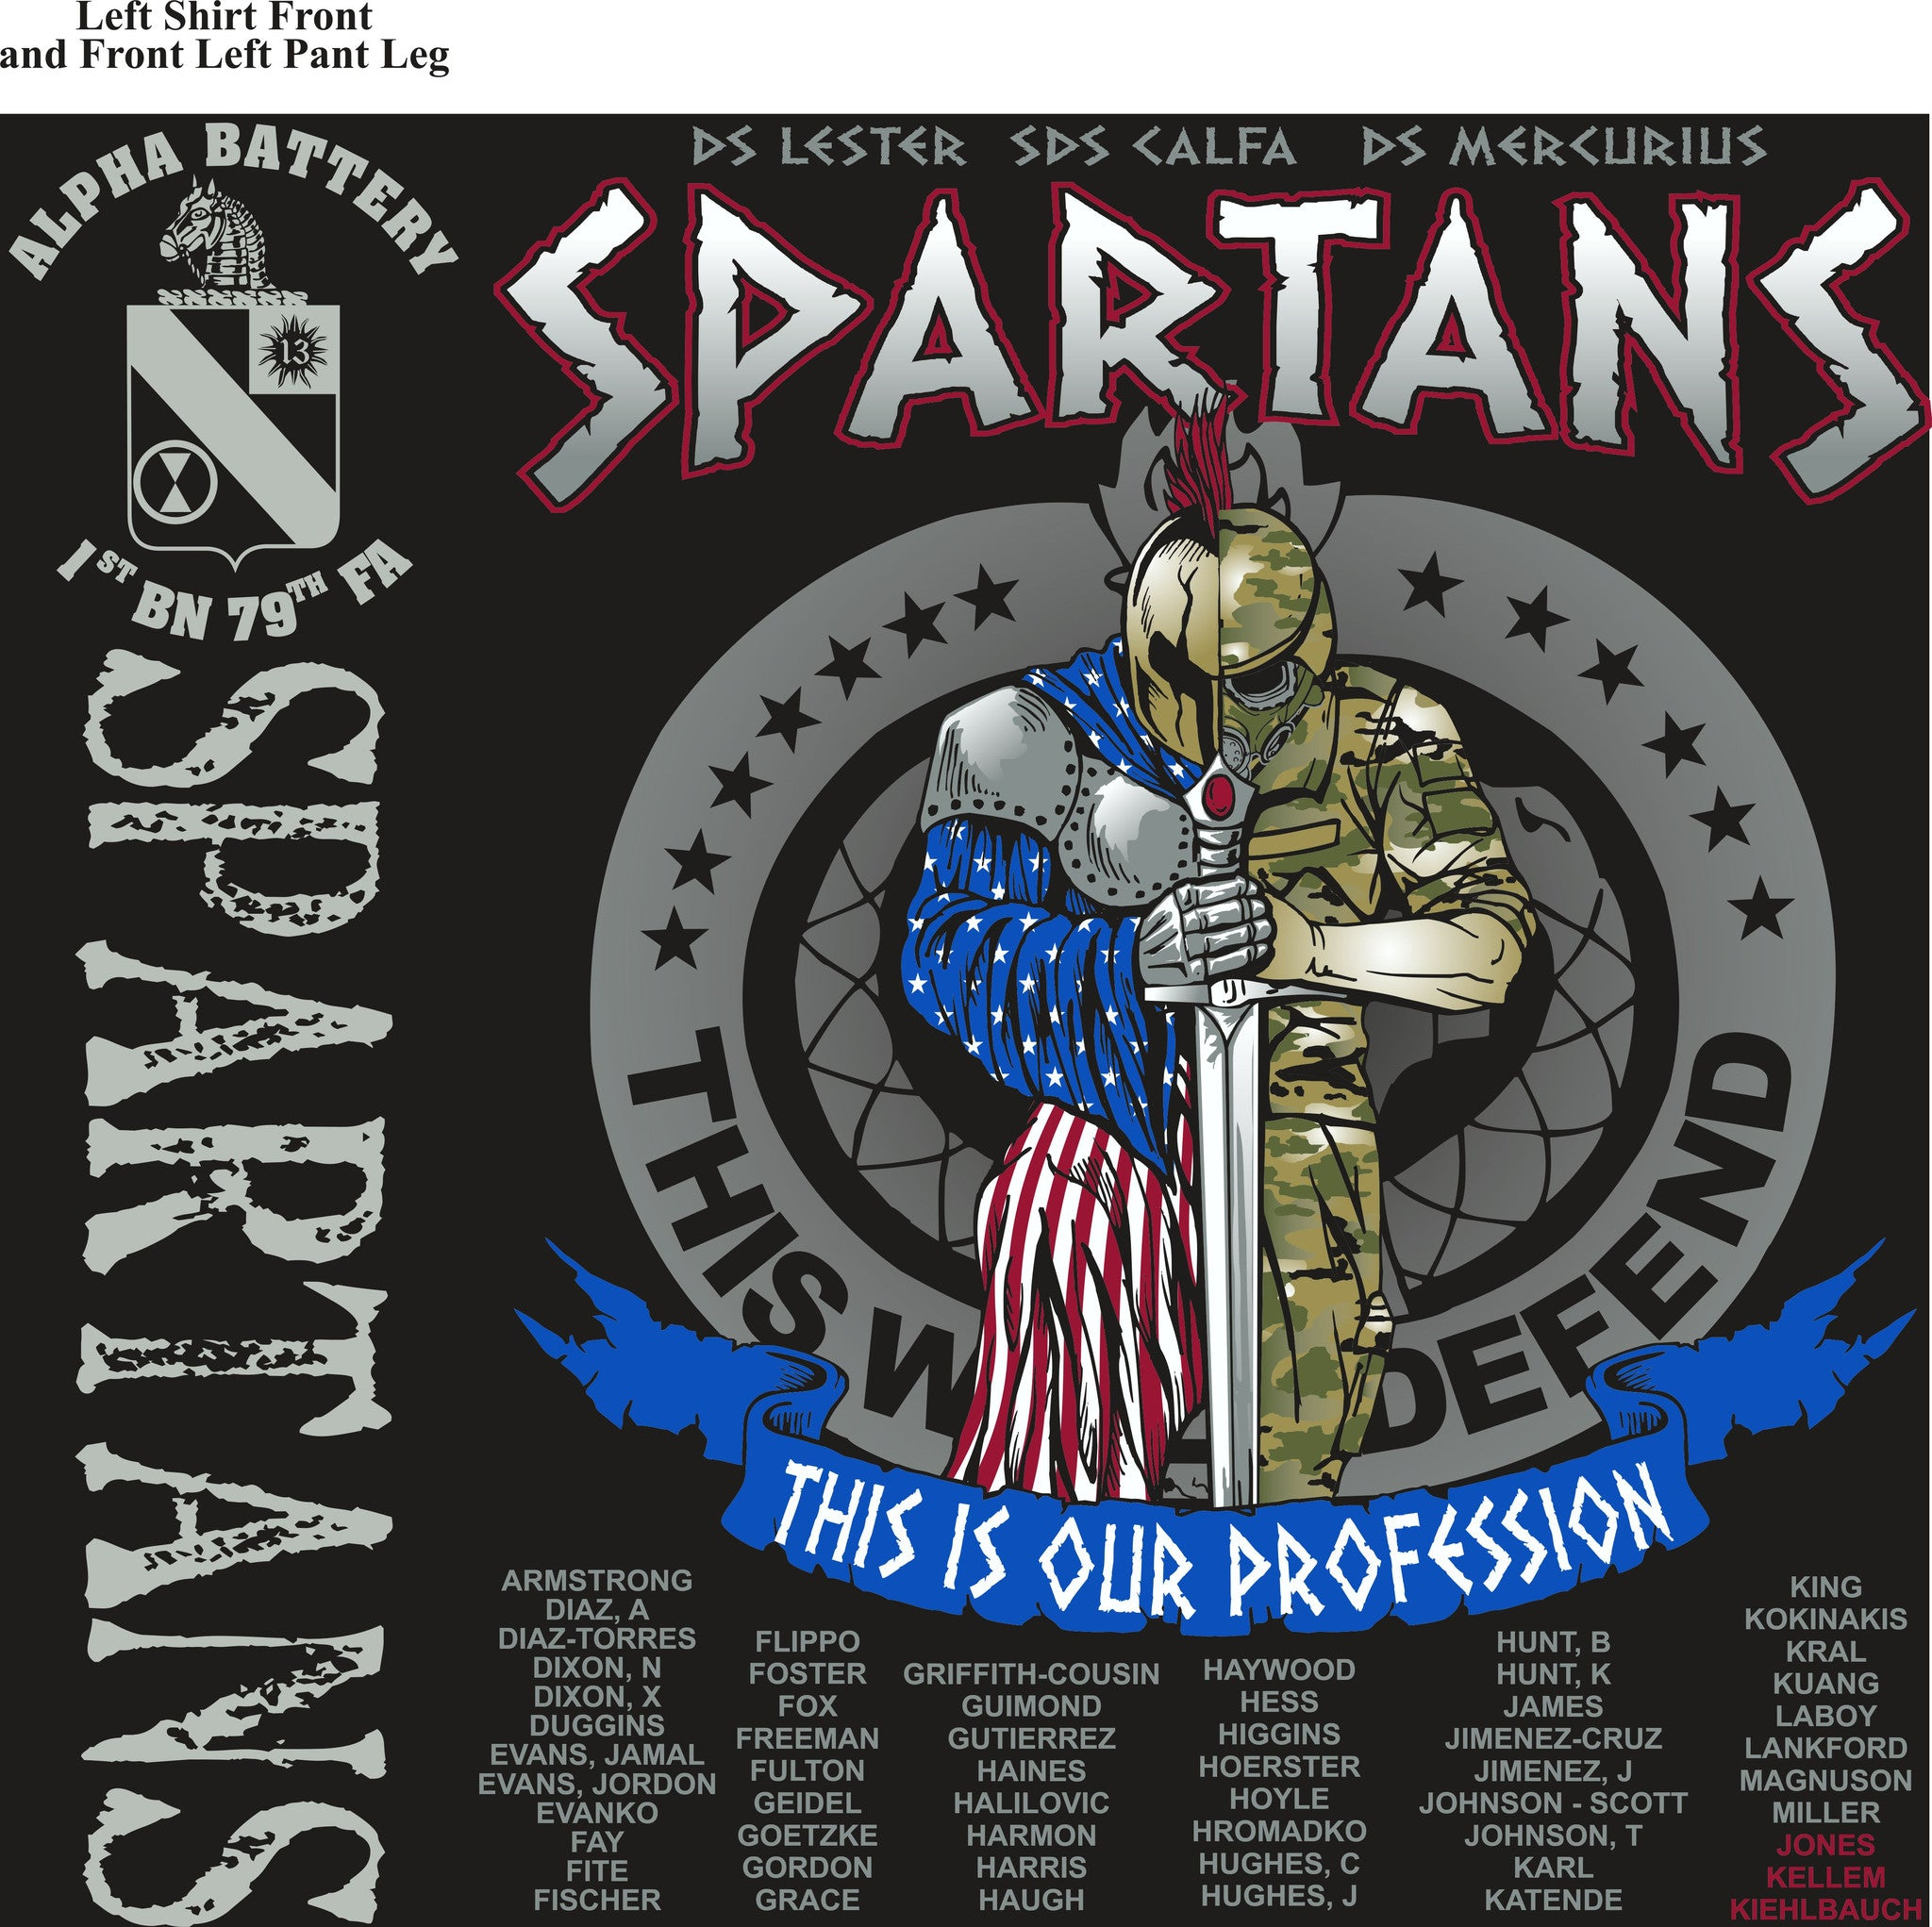 PLATOON SHIRTS (2nd generation print) ALPHA 1st 79th SPARTANS SEPT 2016